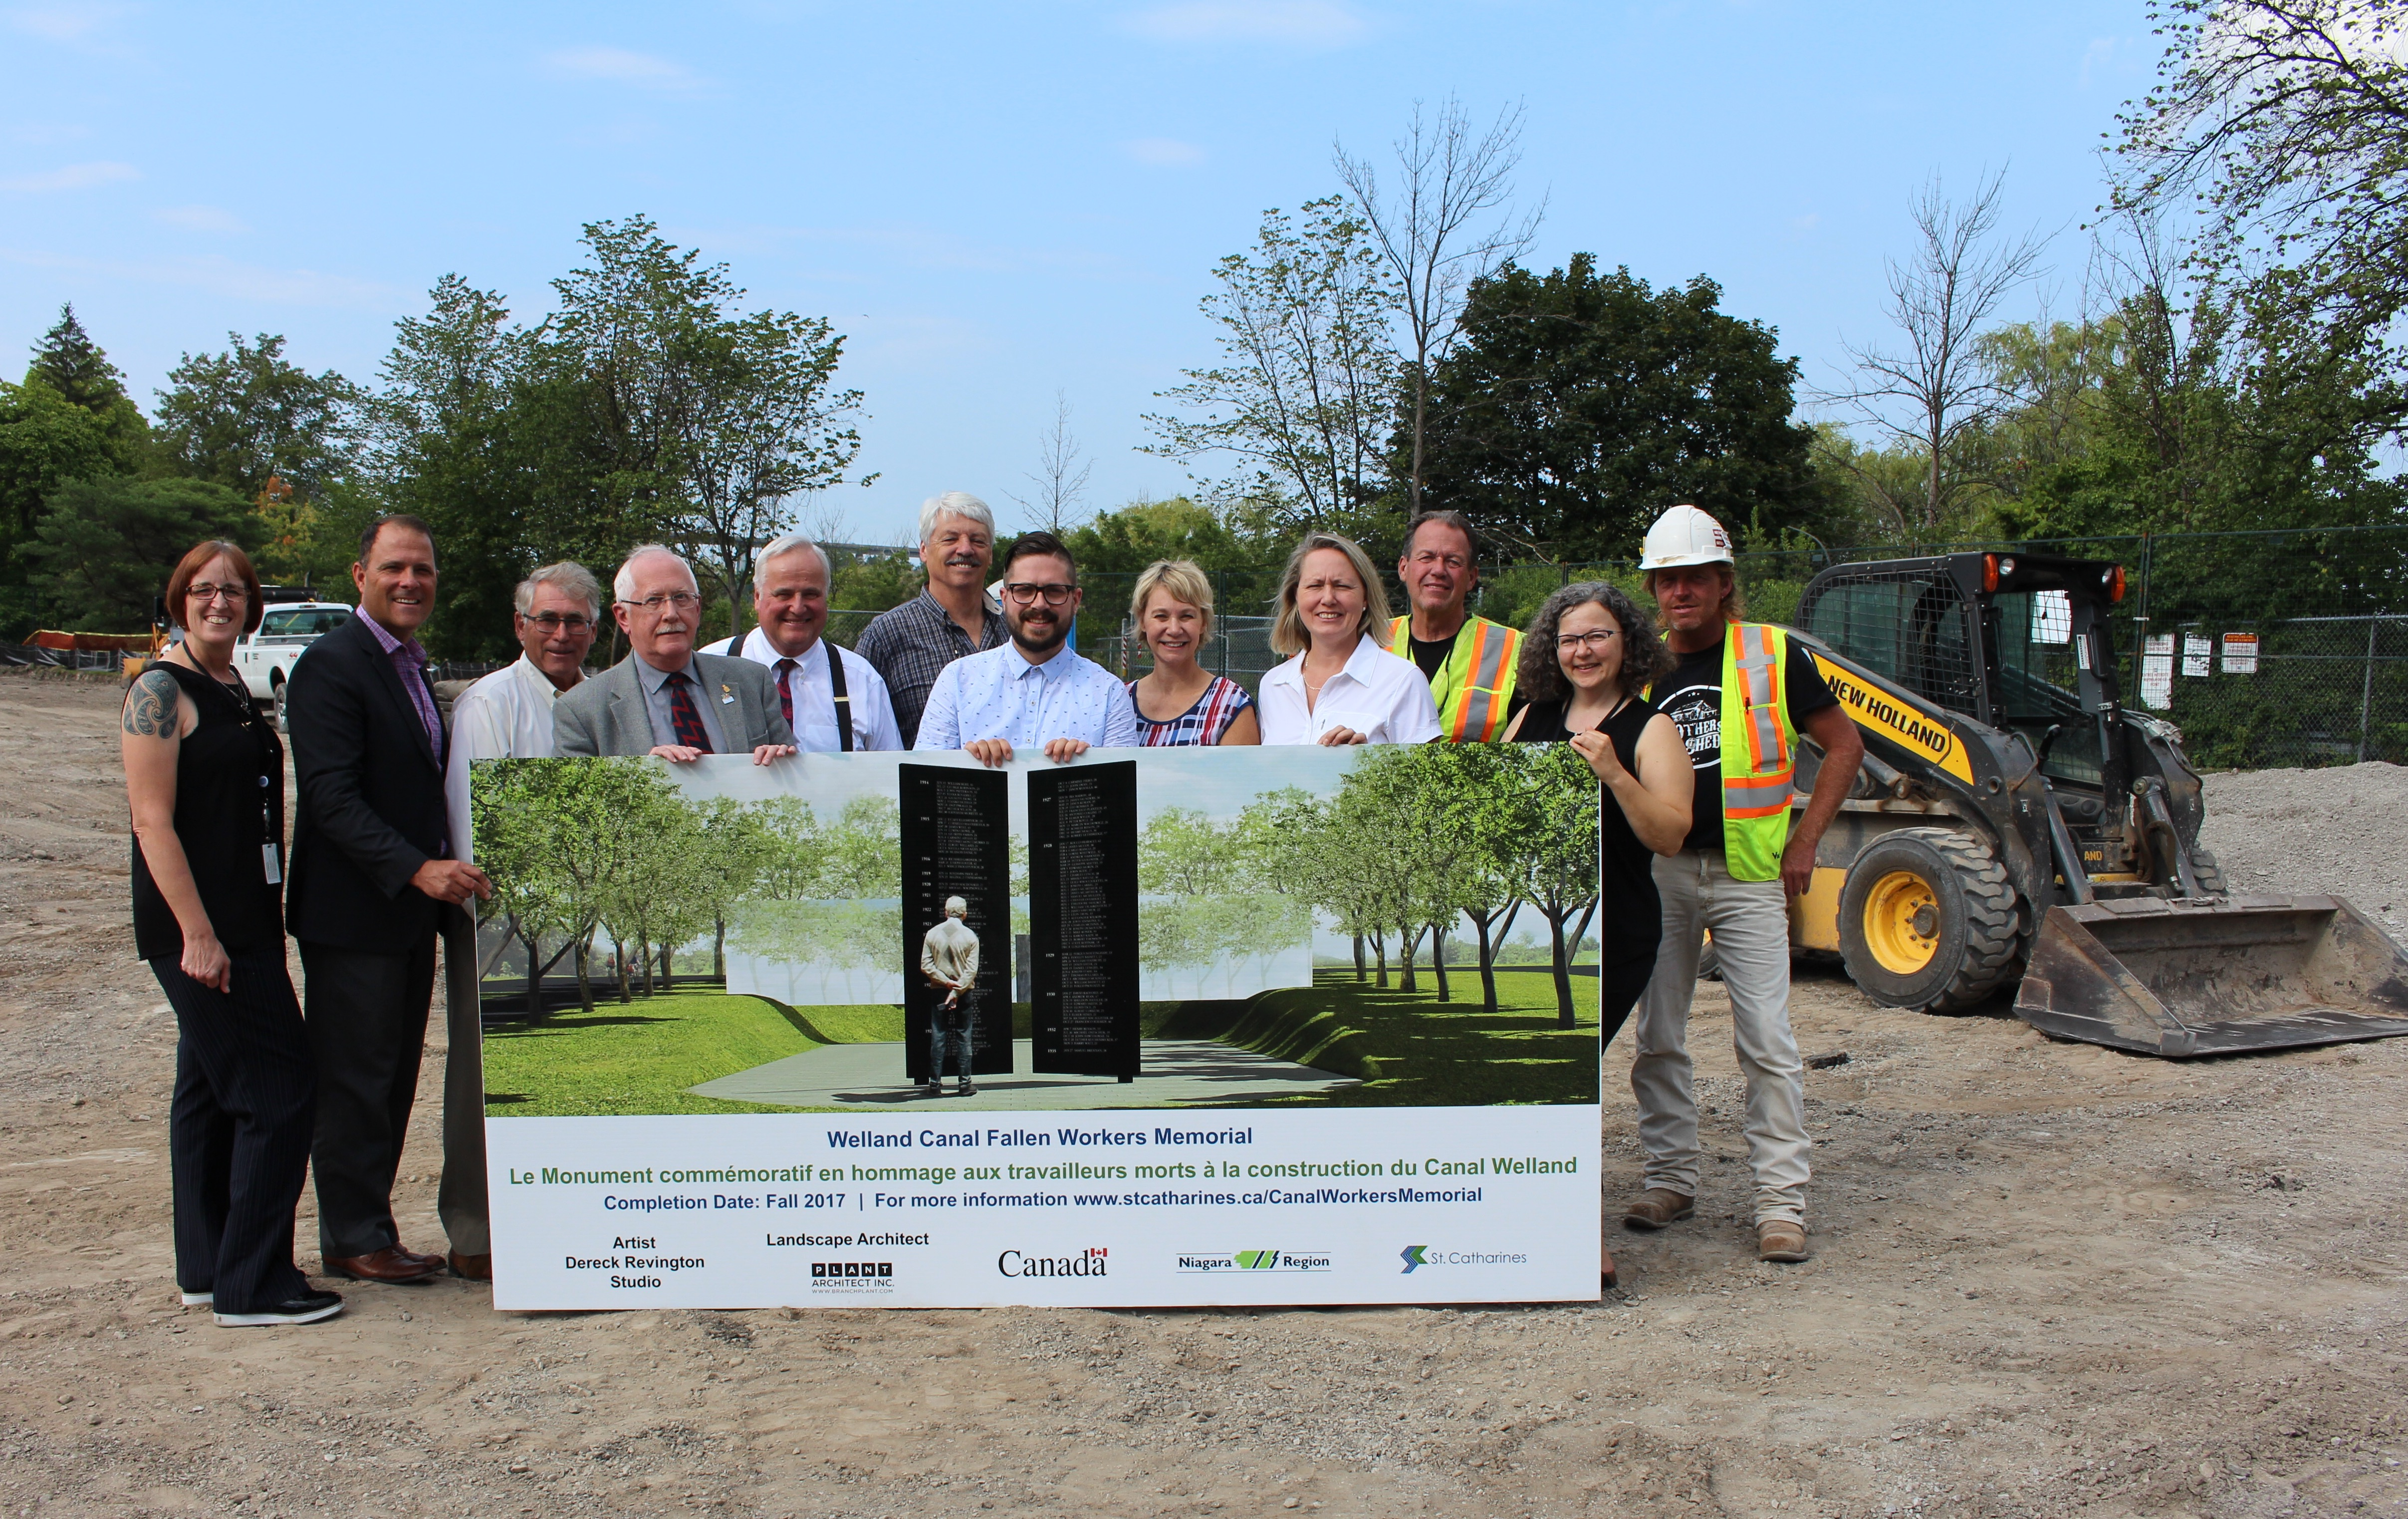 Work begins on Welland Canal Fallen Workers Memorial this Labour Day weekend